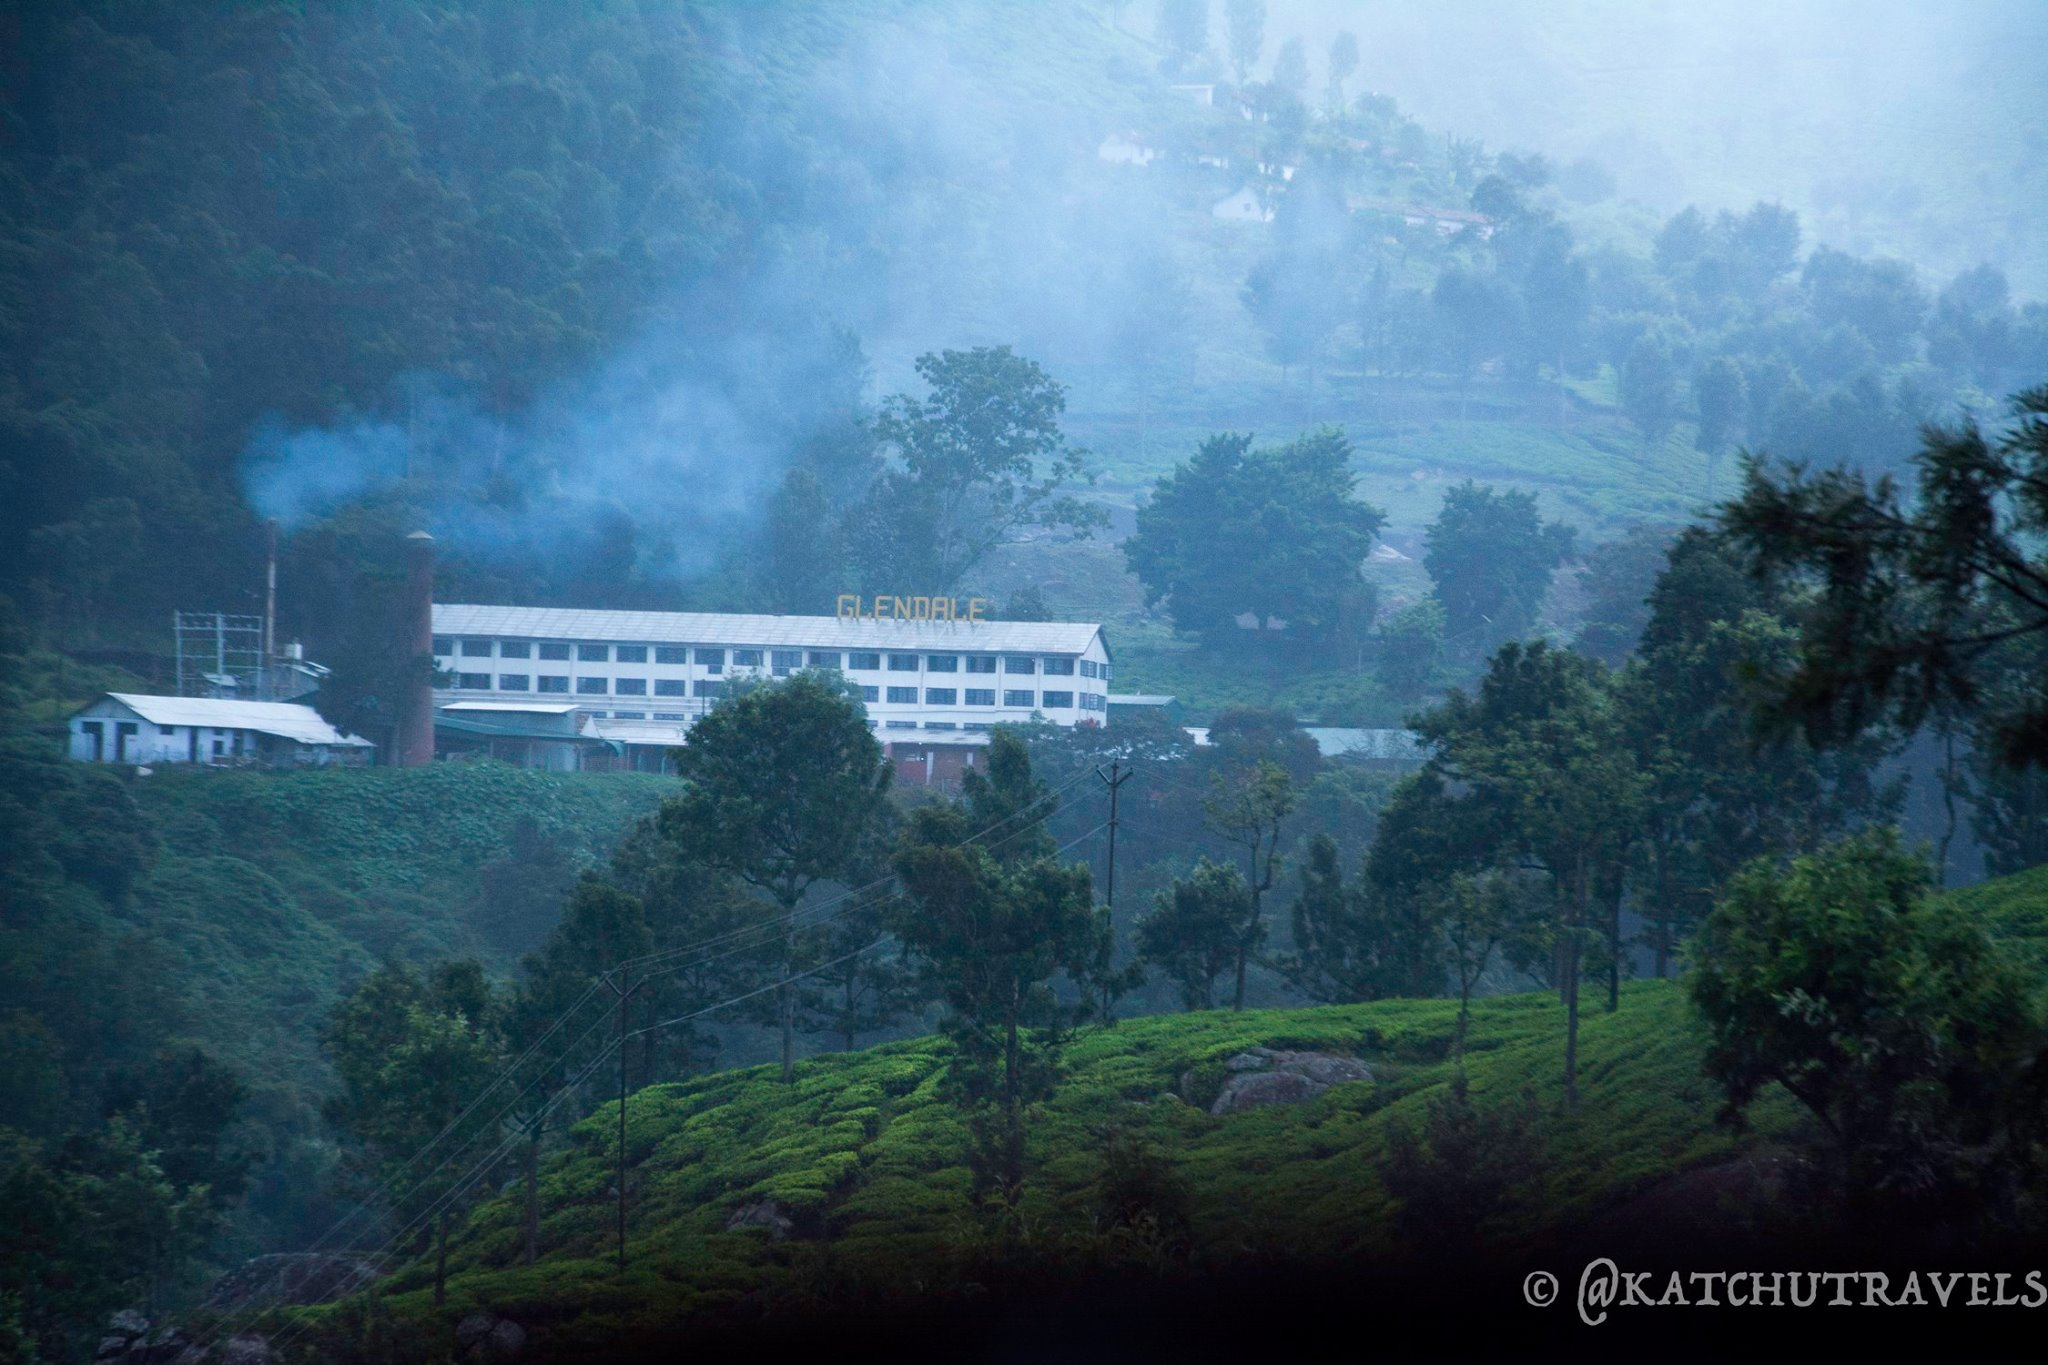 The Glendale Tea Estate when viewed from a distance enroute Coonoor